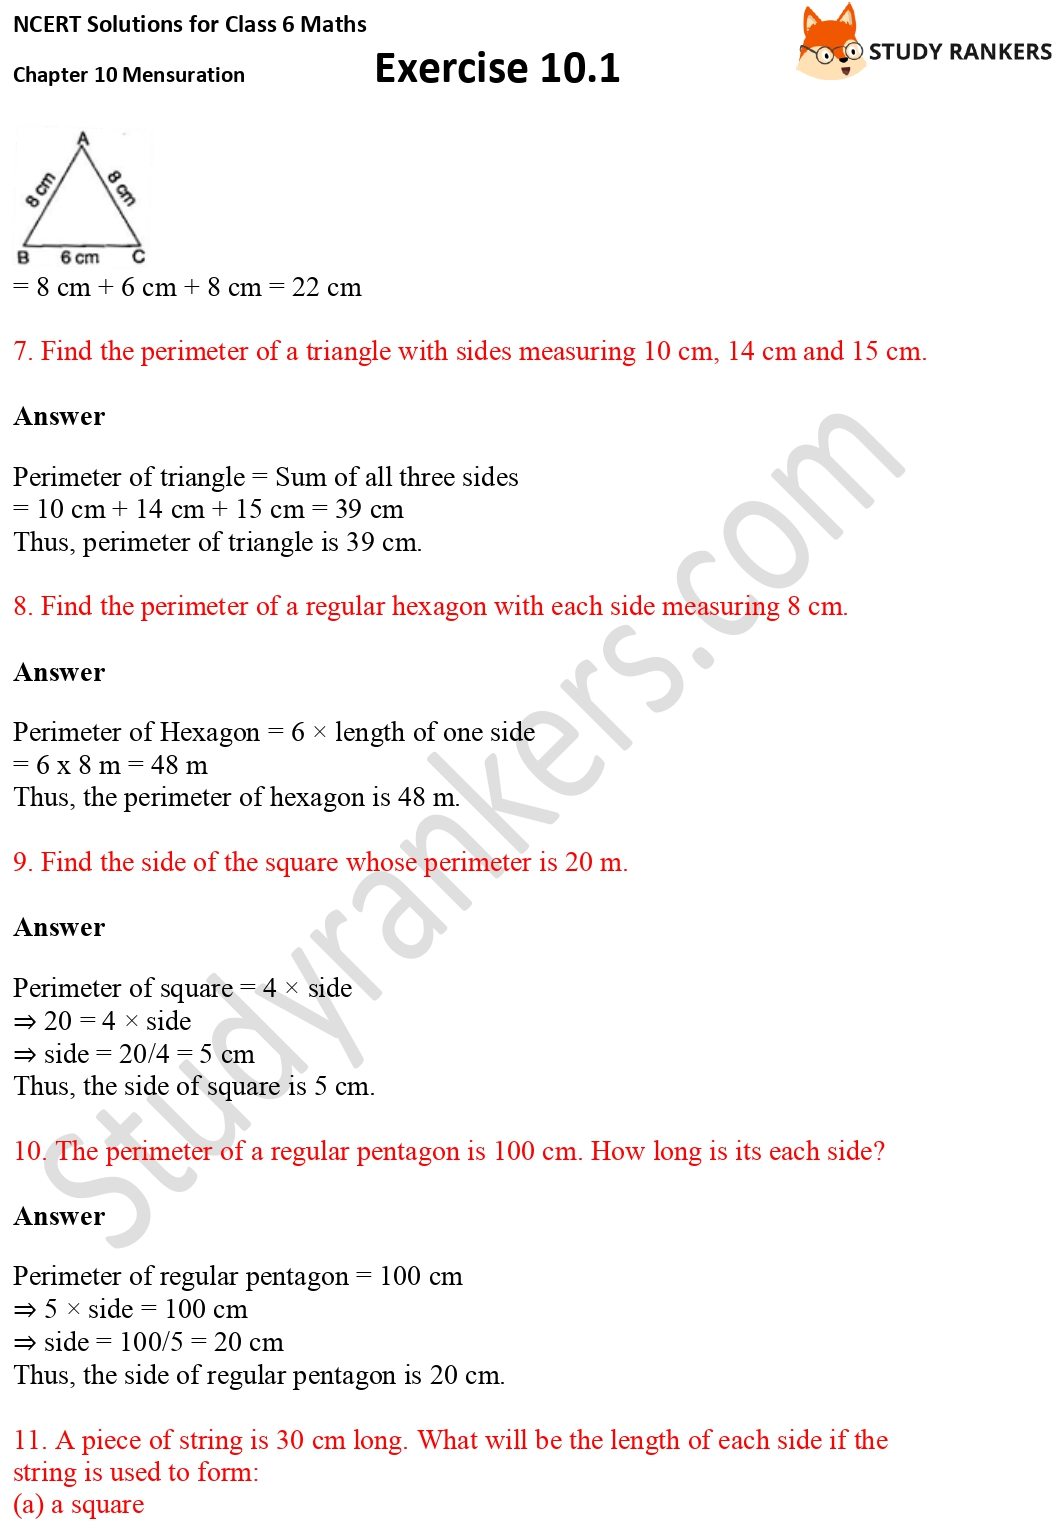 NCERT Solutions for Class 6 Maths Chapter 10 Mensuration Exercise 10.1 Part 4